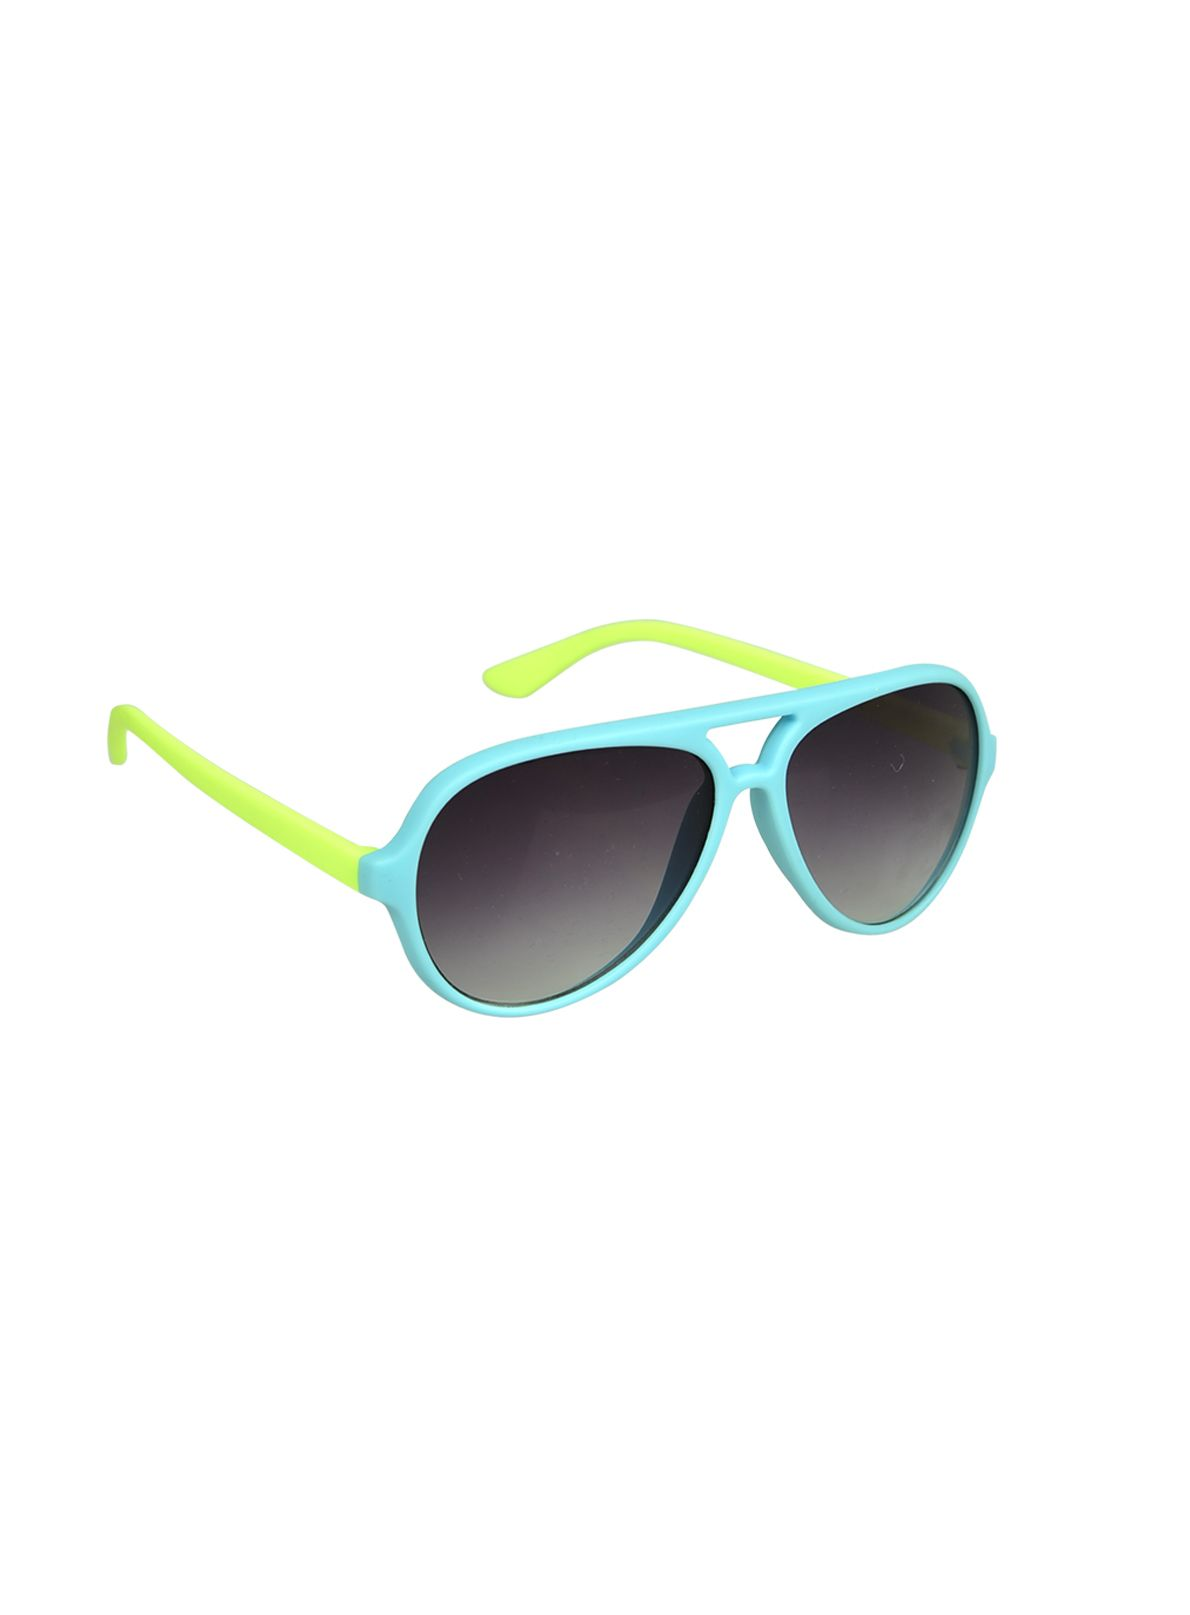 Boys spliced aviator sunglasses